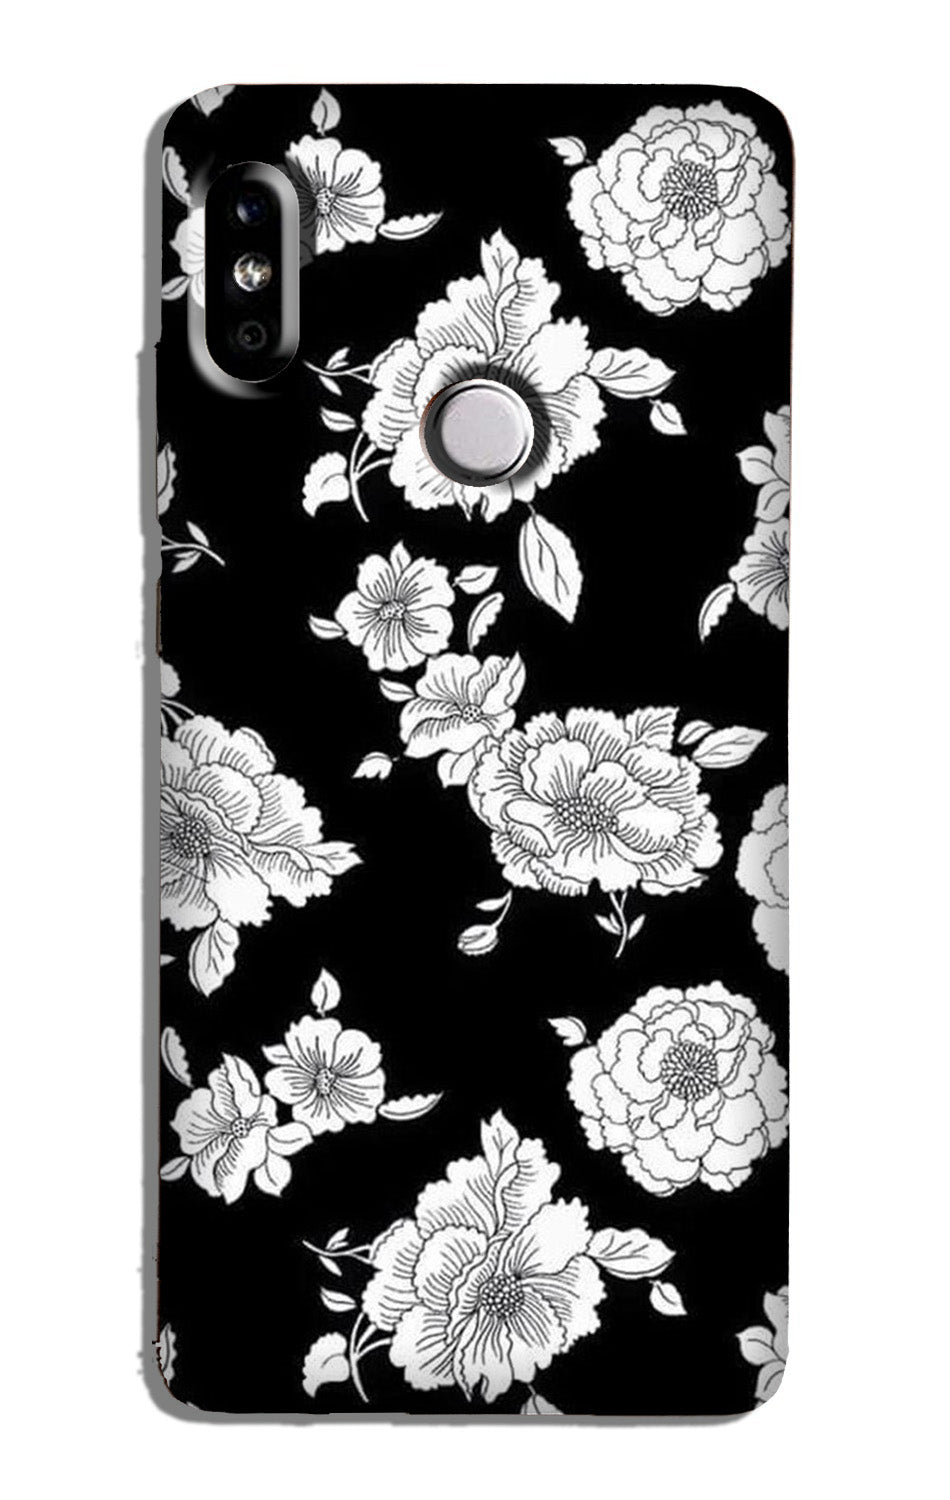 White flowers Black Background Case for Redmi 6 Pro